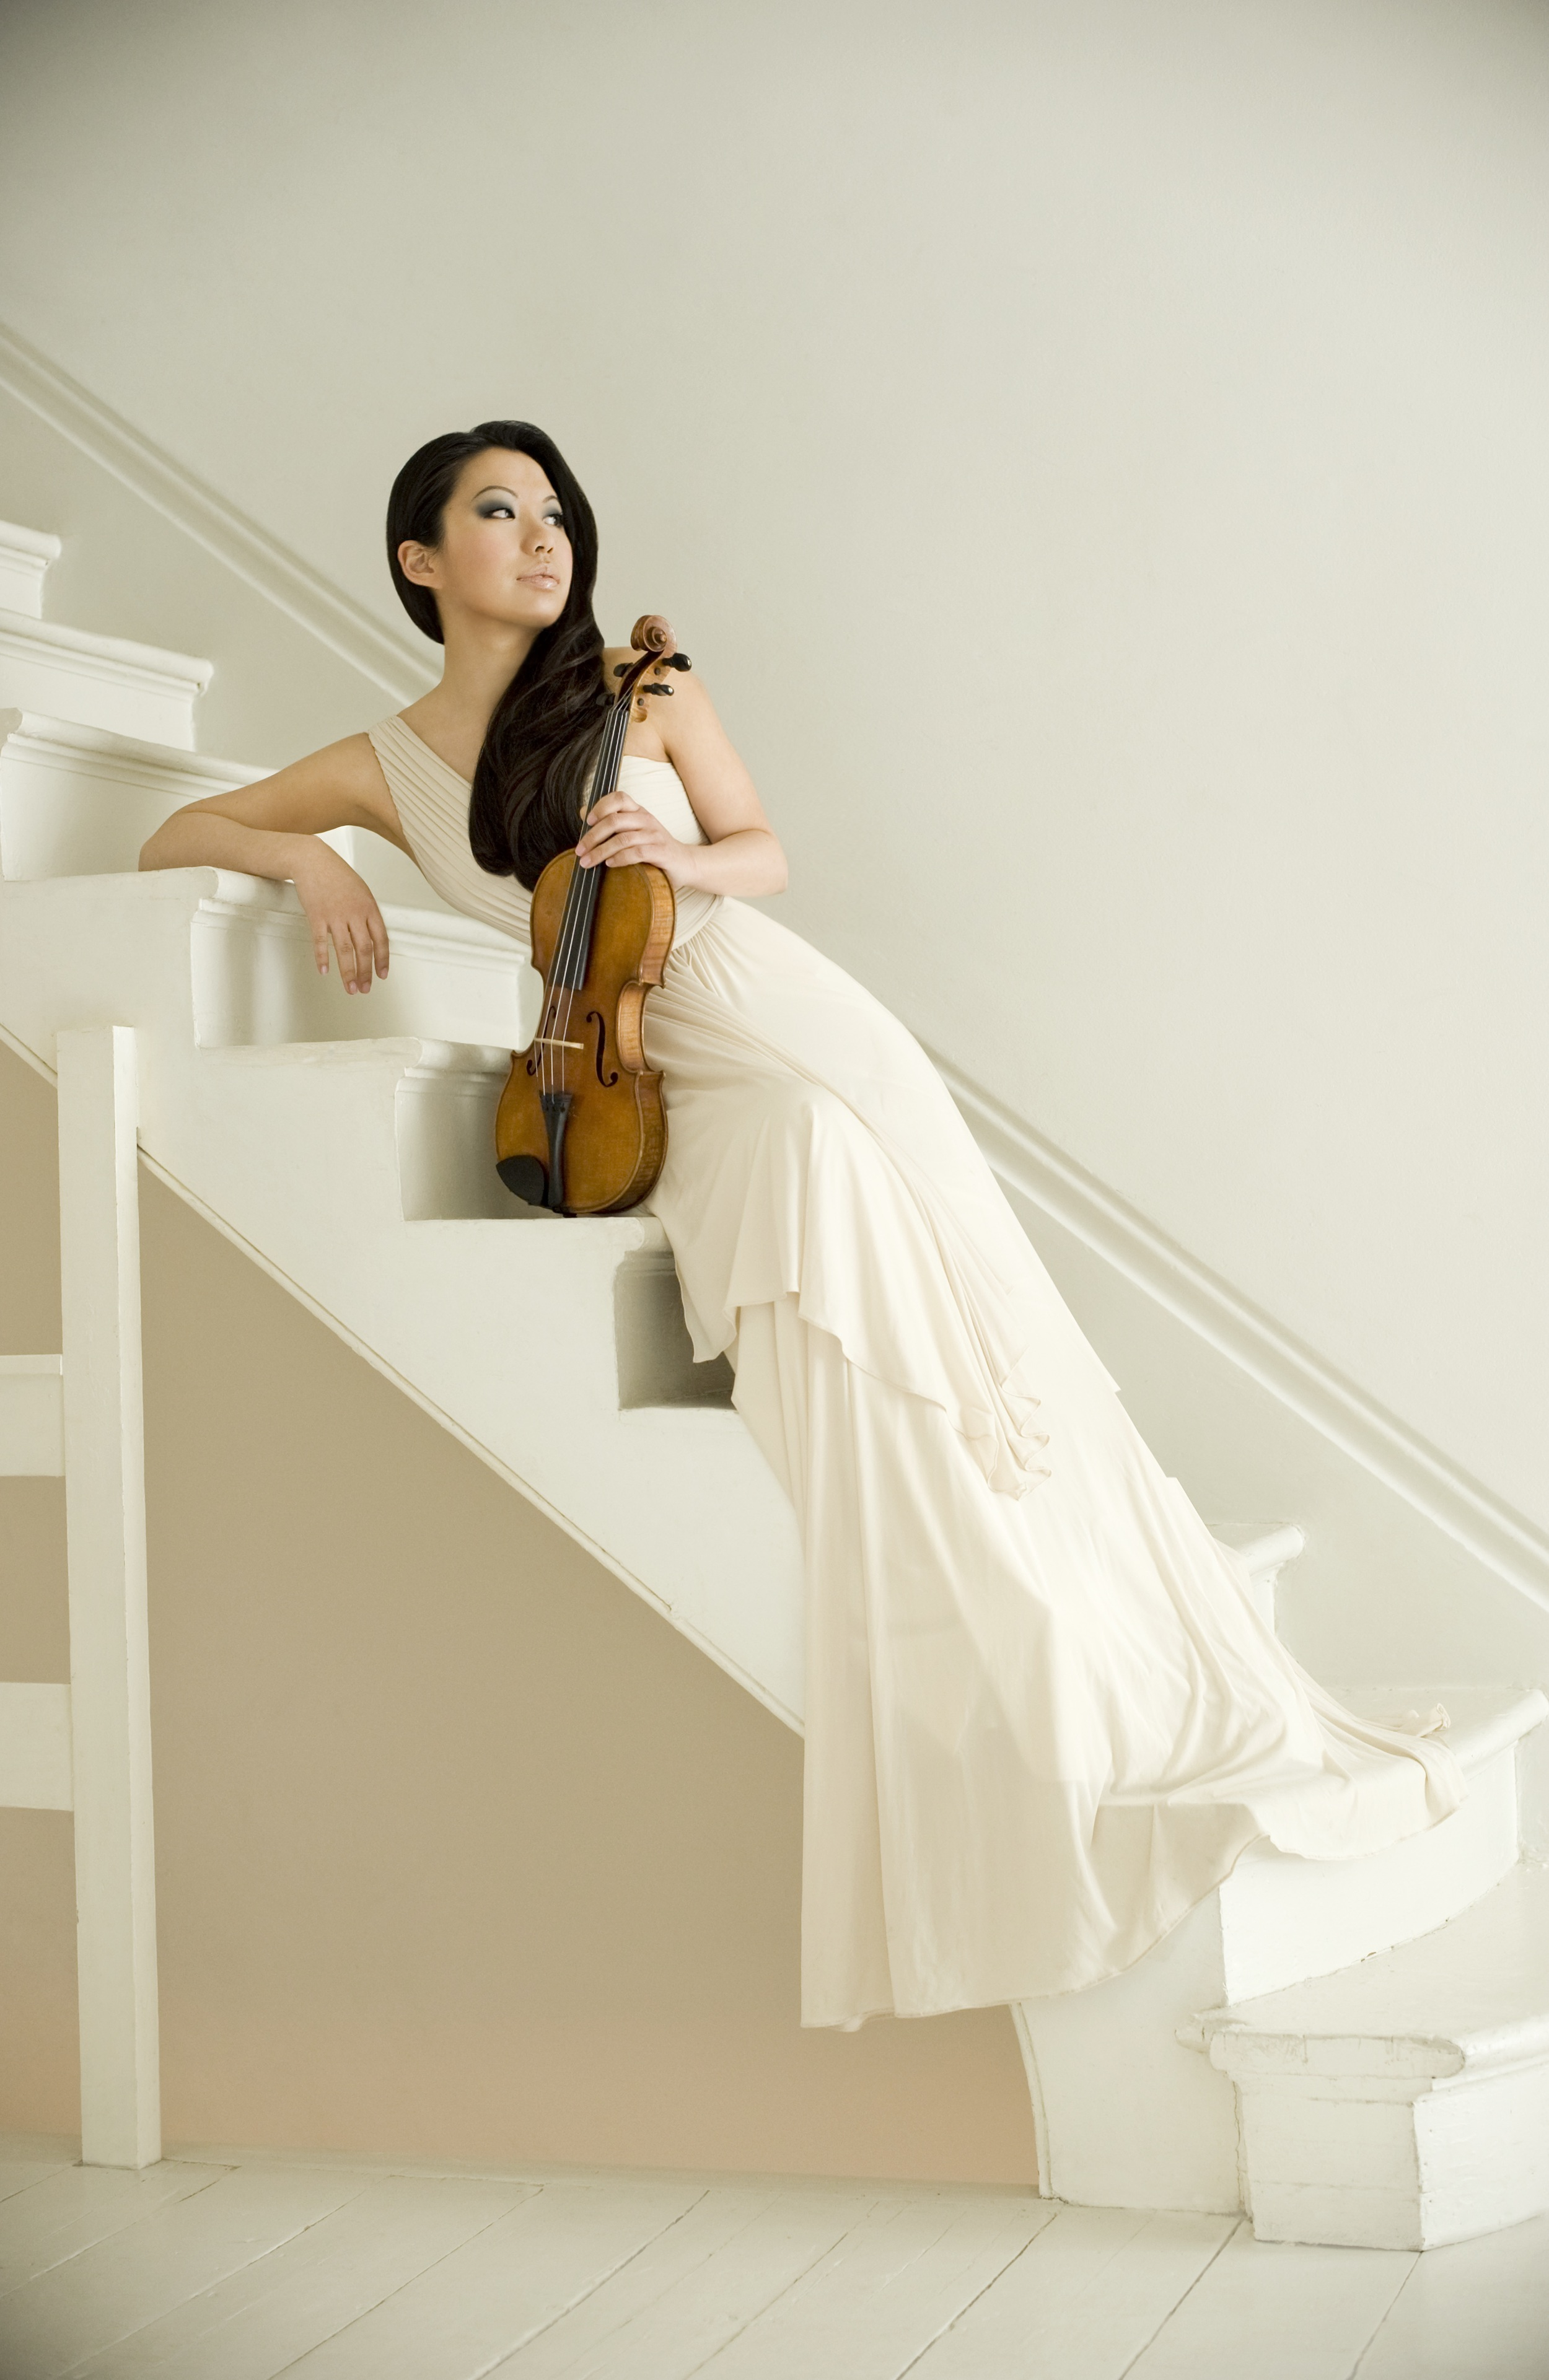 Sarah Chang. Photo copyright Colin Bell under license to EMI Classics.